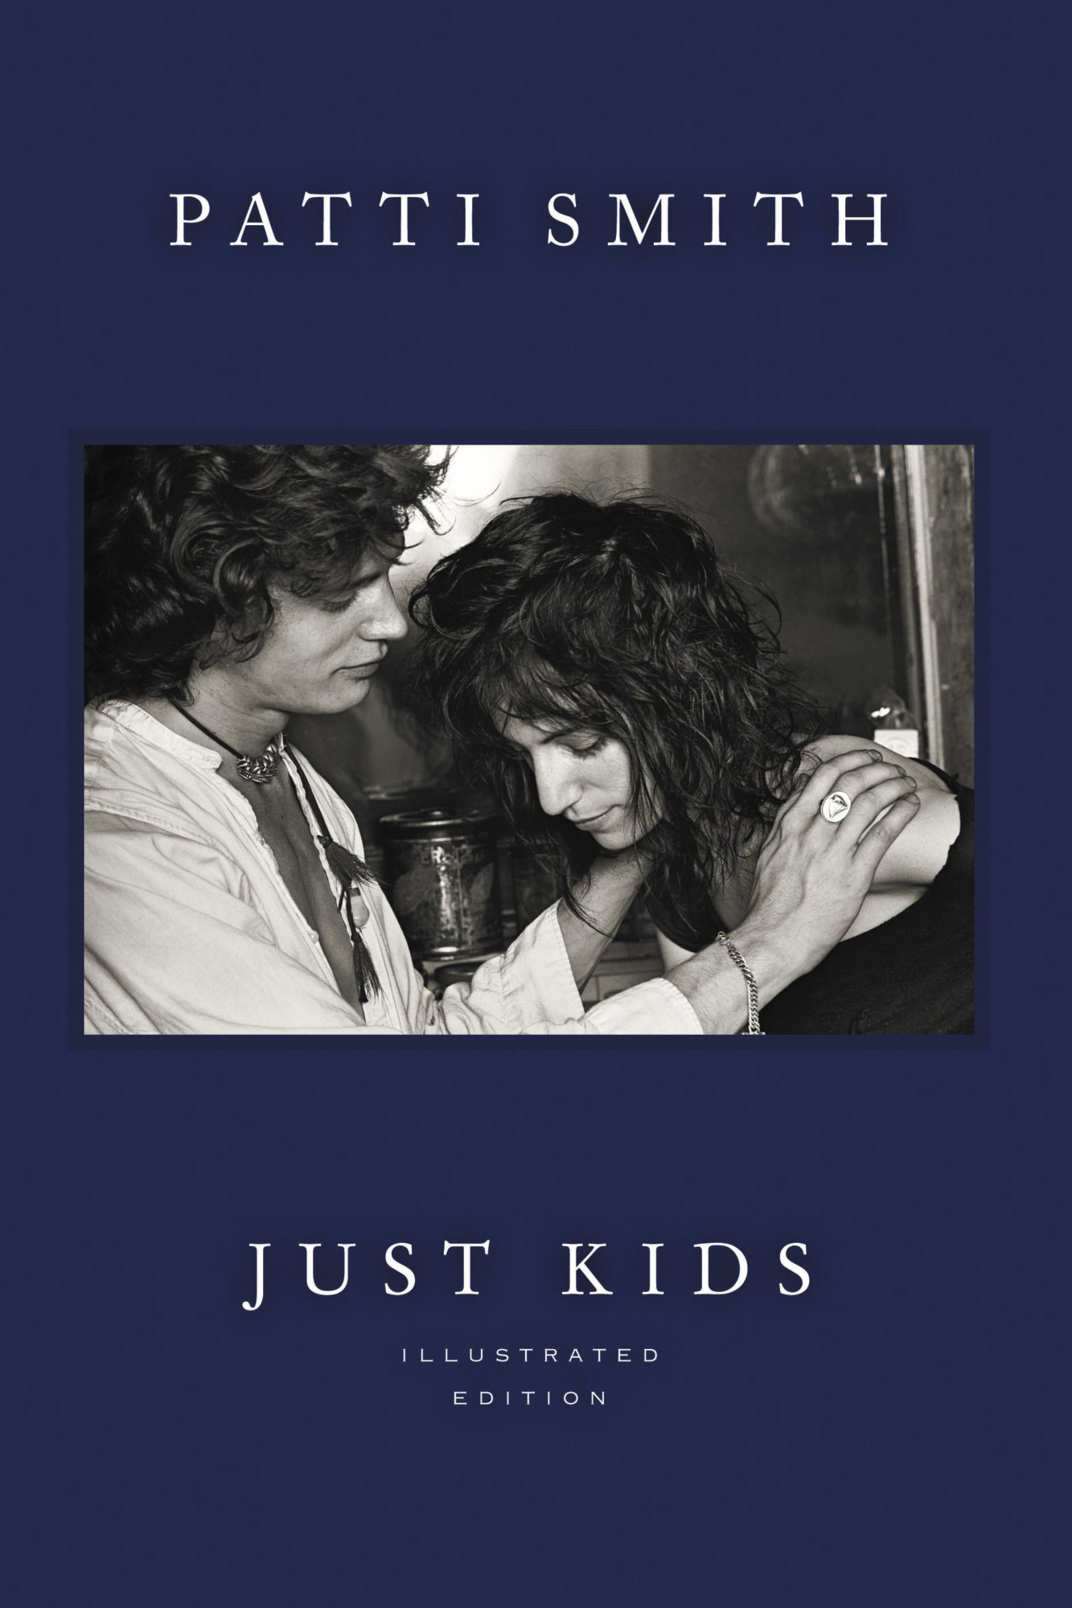 Just Kids: Illustrated Edition, by Patti Smith (Ecco, Oct. 23)